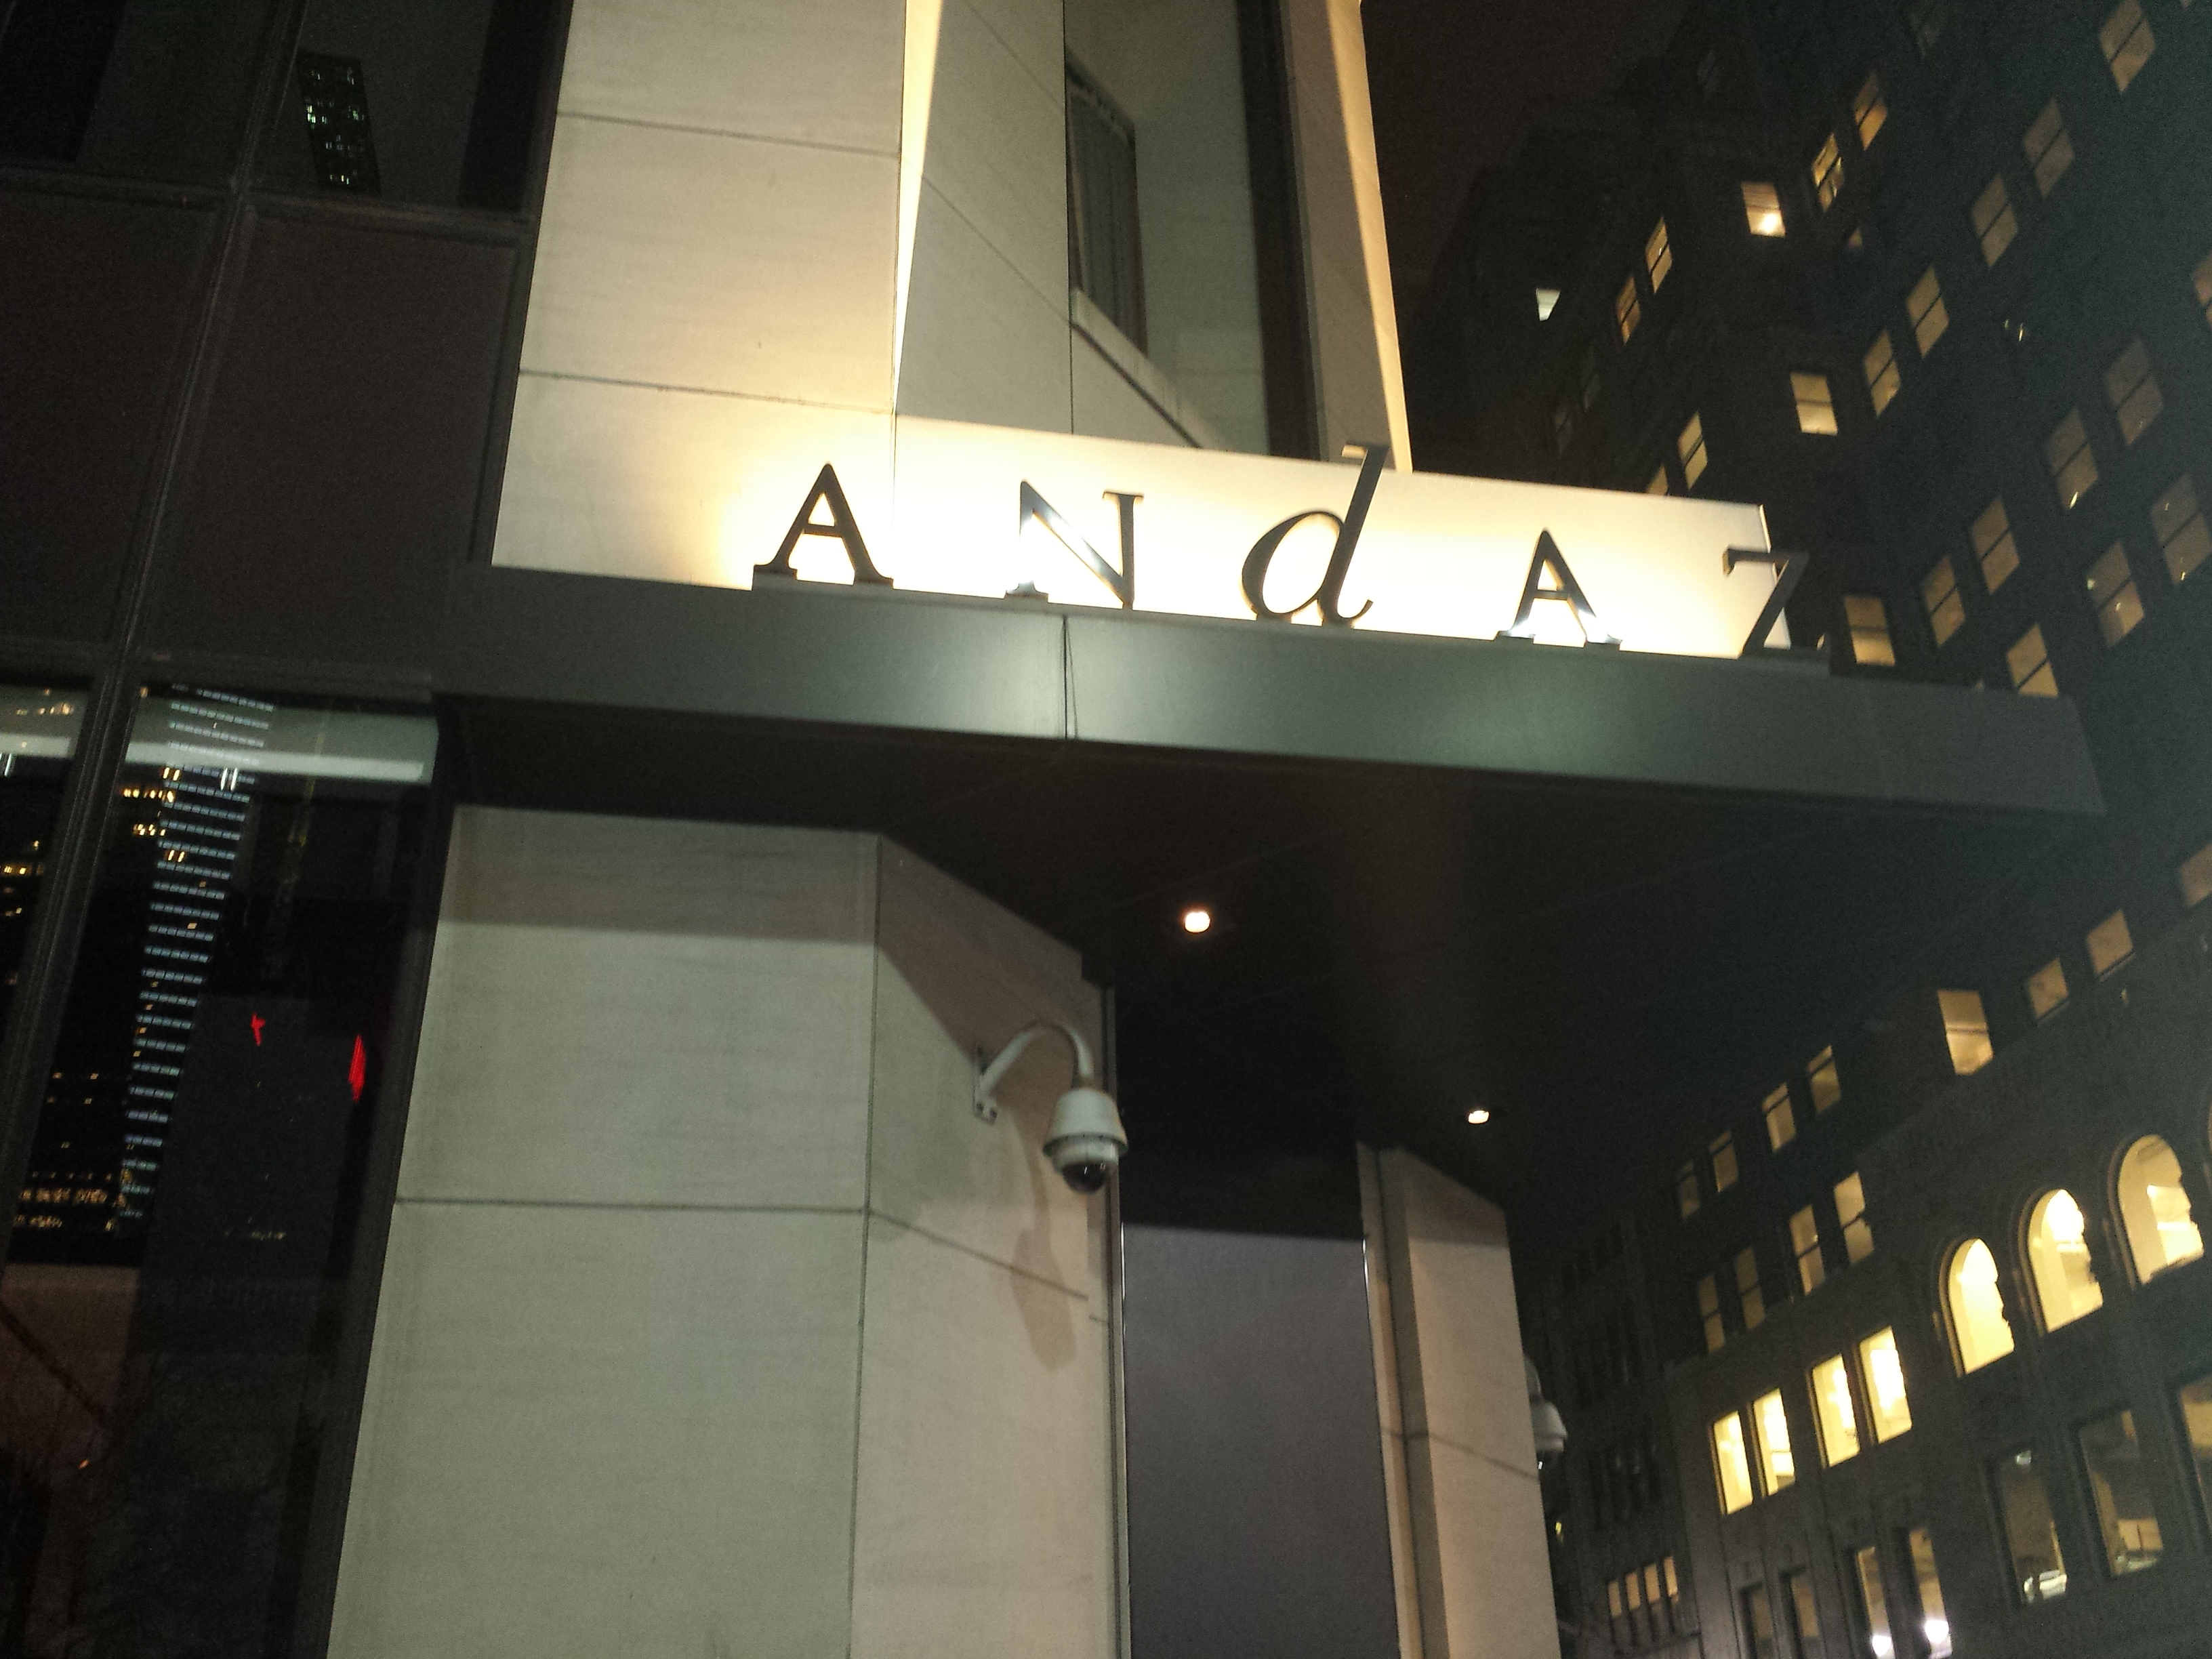 Andaz 5th ave terrace suite adnan n samia for Terrace meaning in urdu